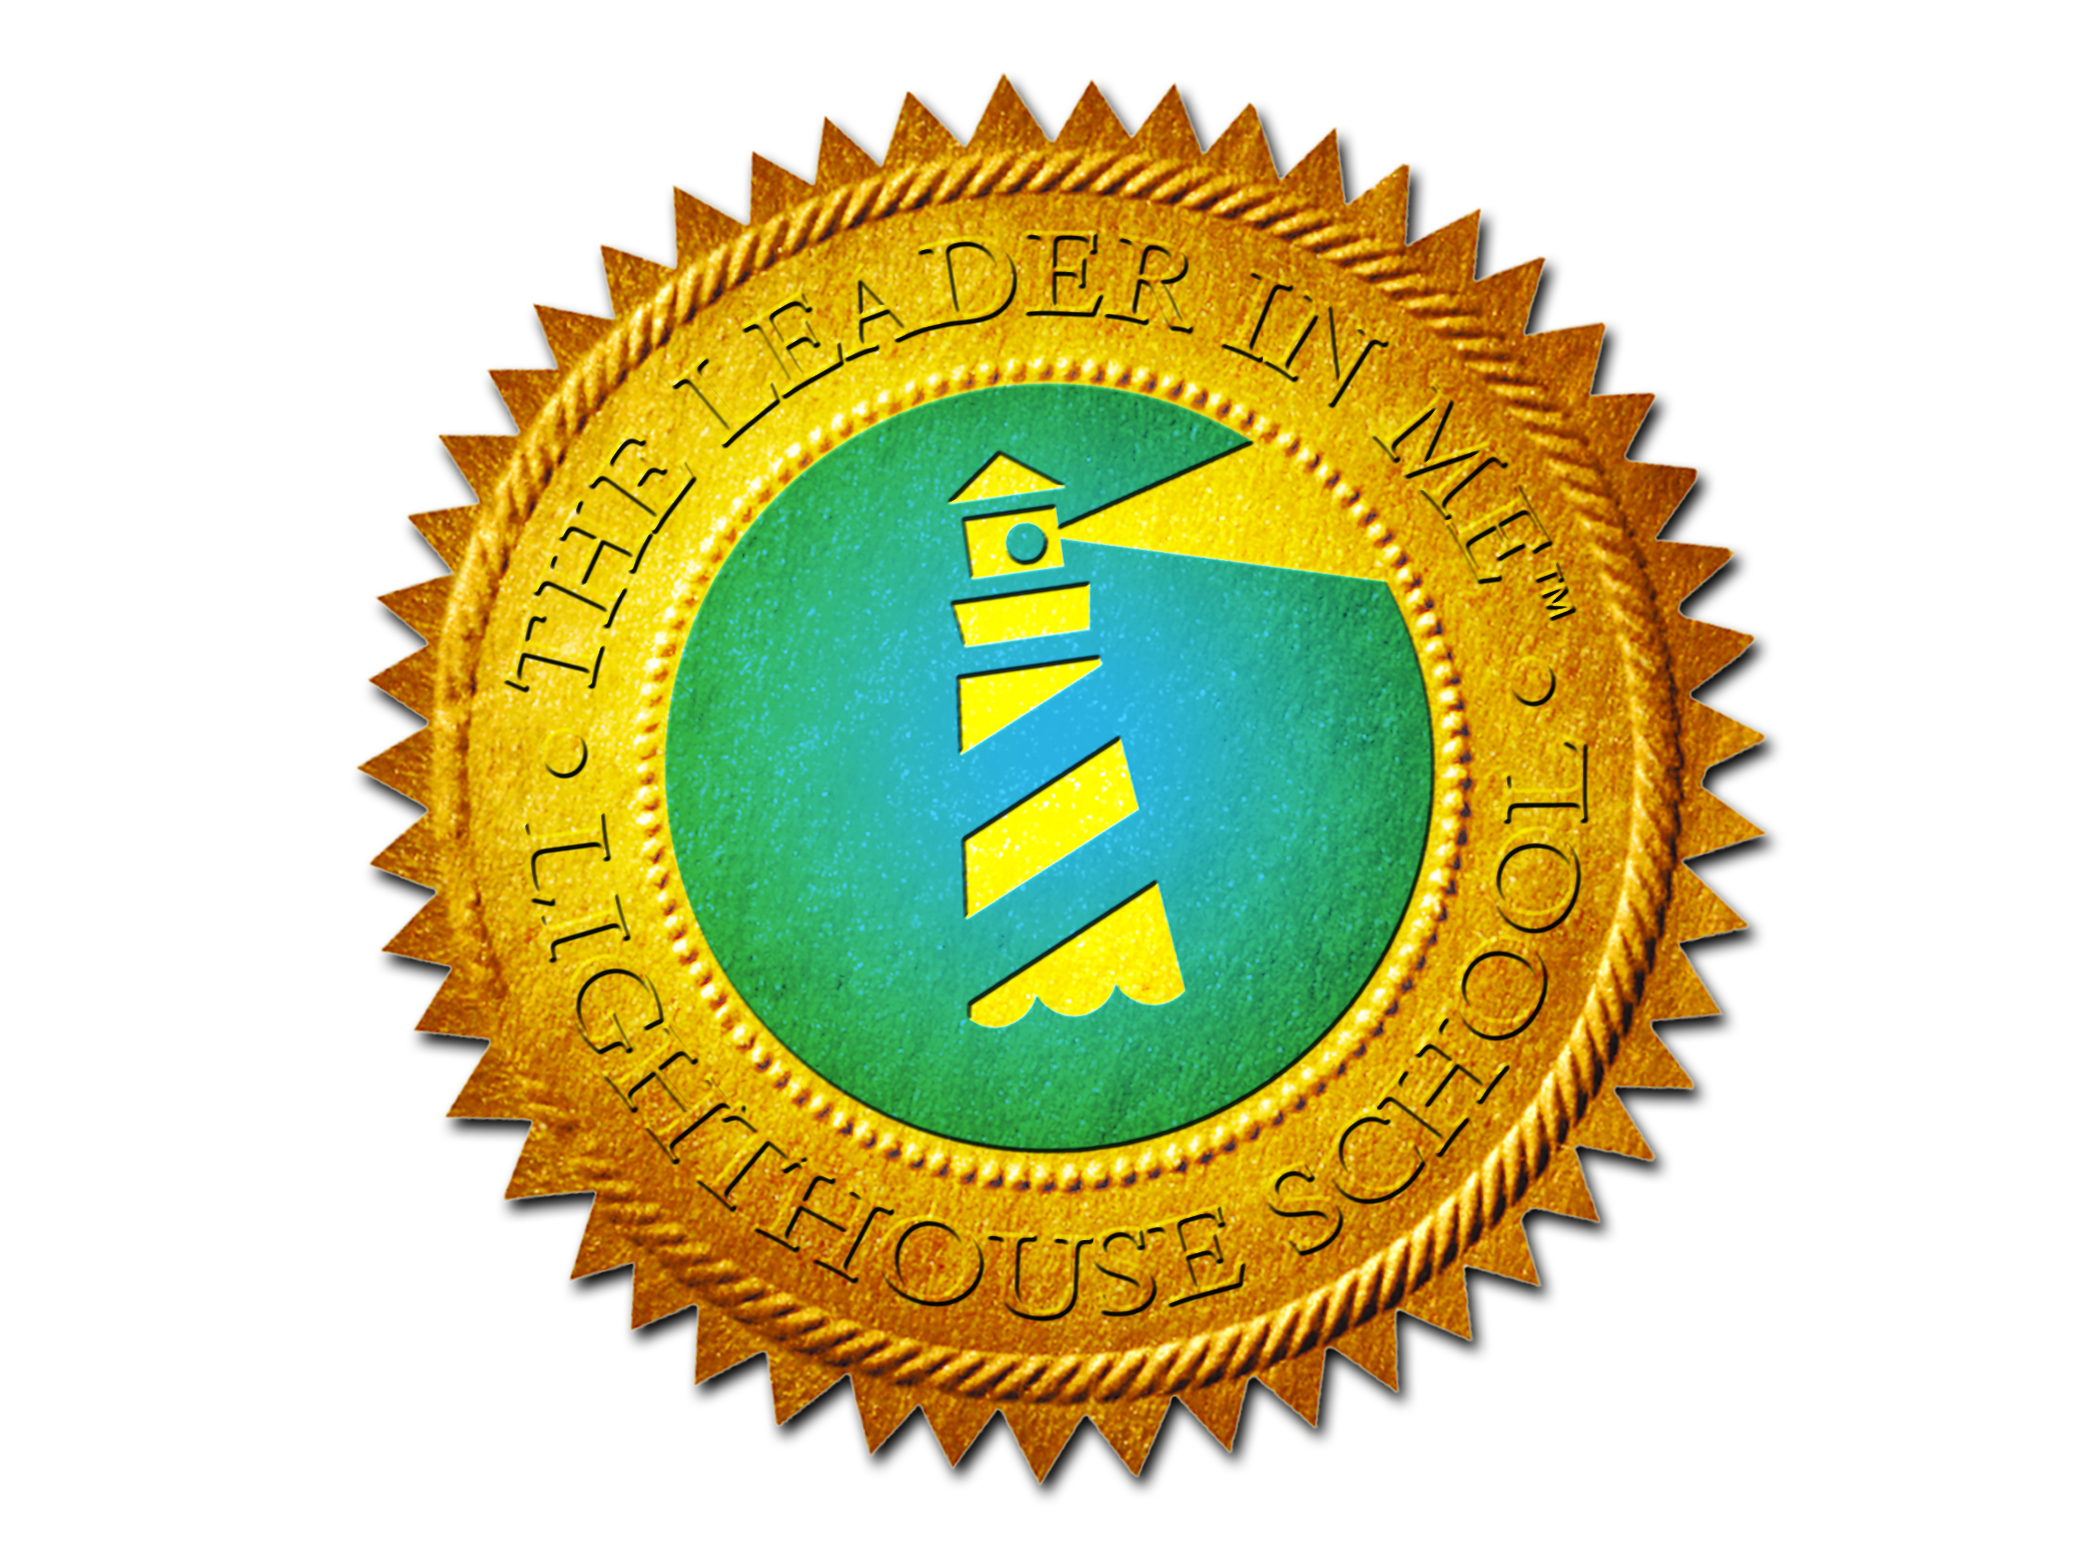 Leader in Me Lighthouse Seal